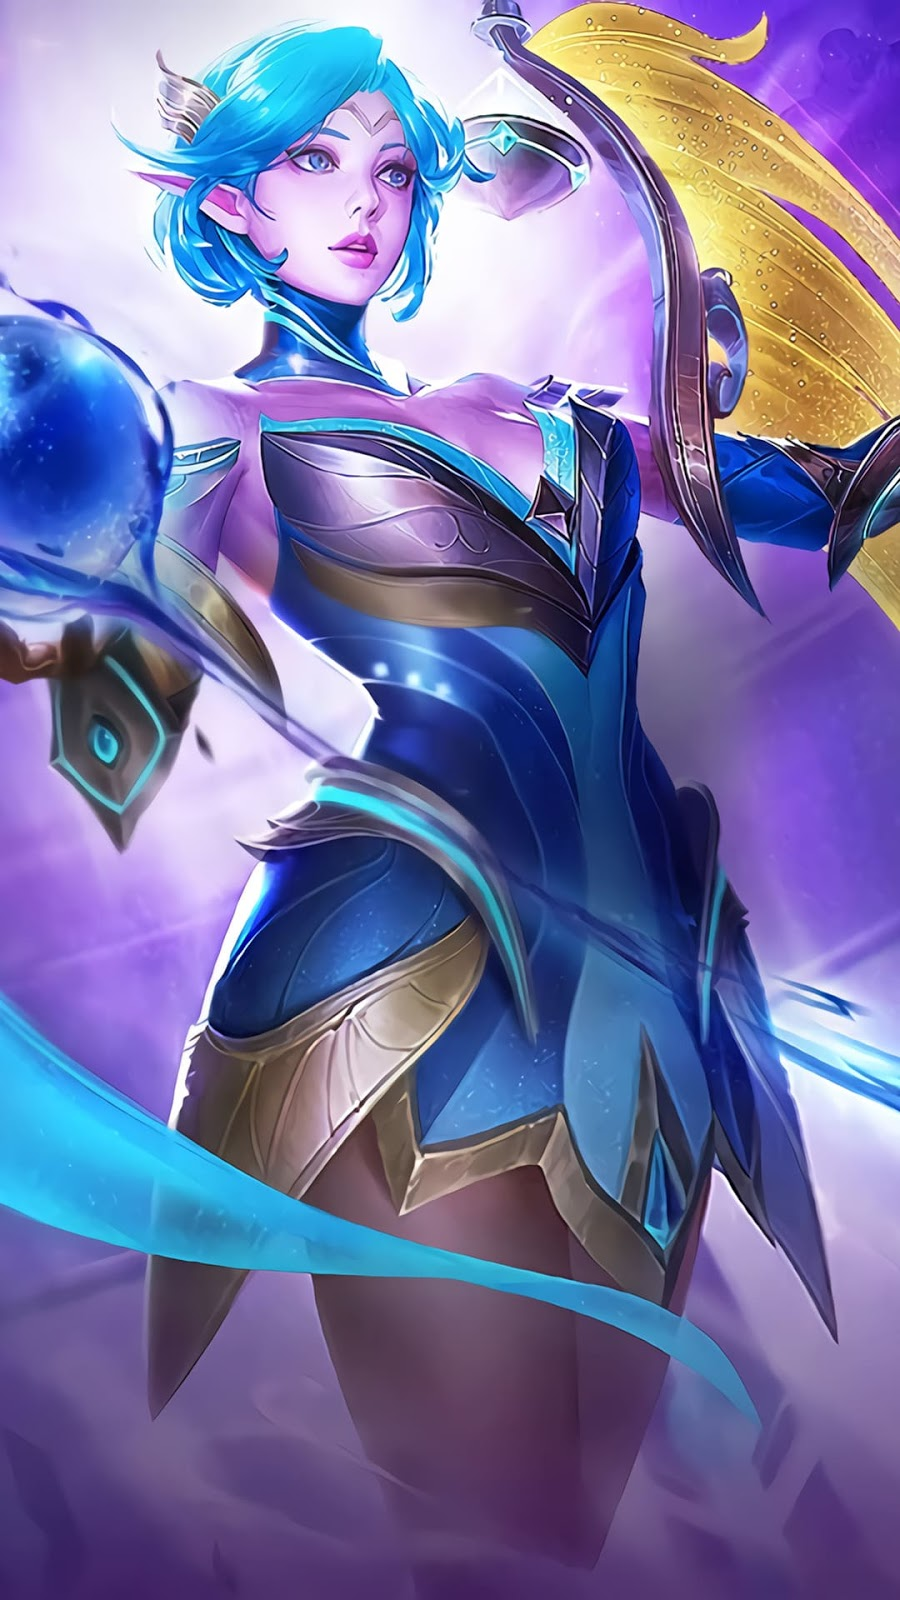 Wallpaper Lunox Libra Zodiac Skin Mobile Legends Full HD for Android and iOS